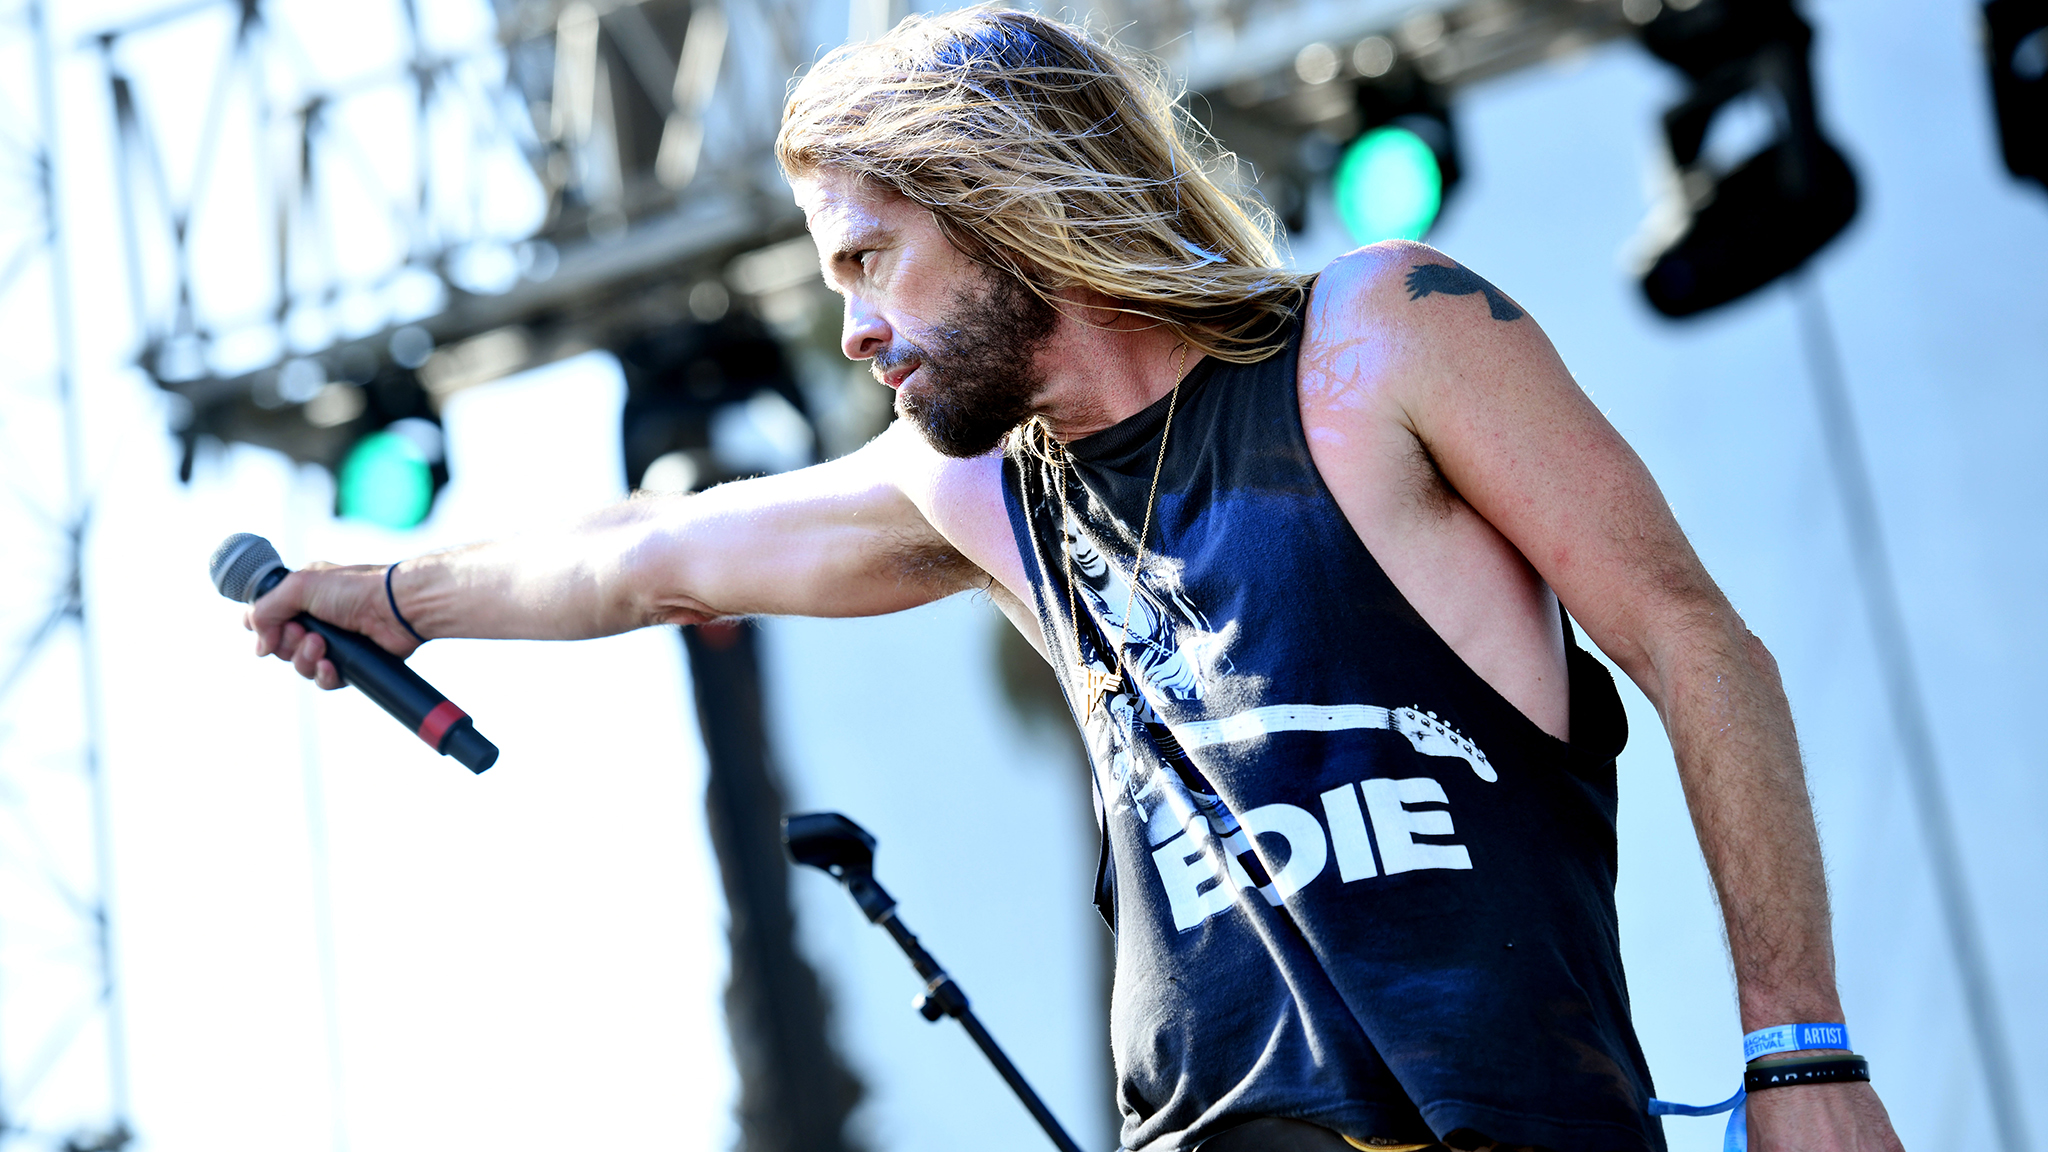 Taylor Hawkins and Chevy Metal are bringing the party to X Games Minneapolis 2019.